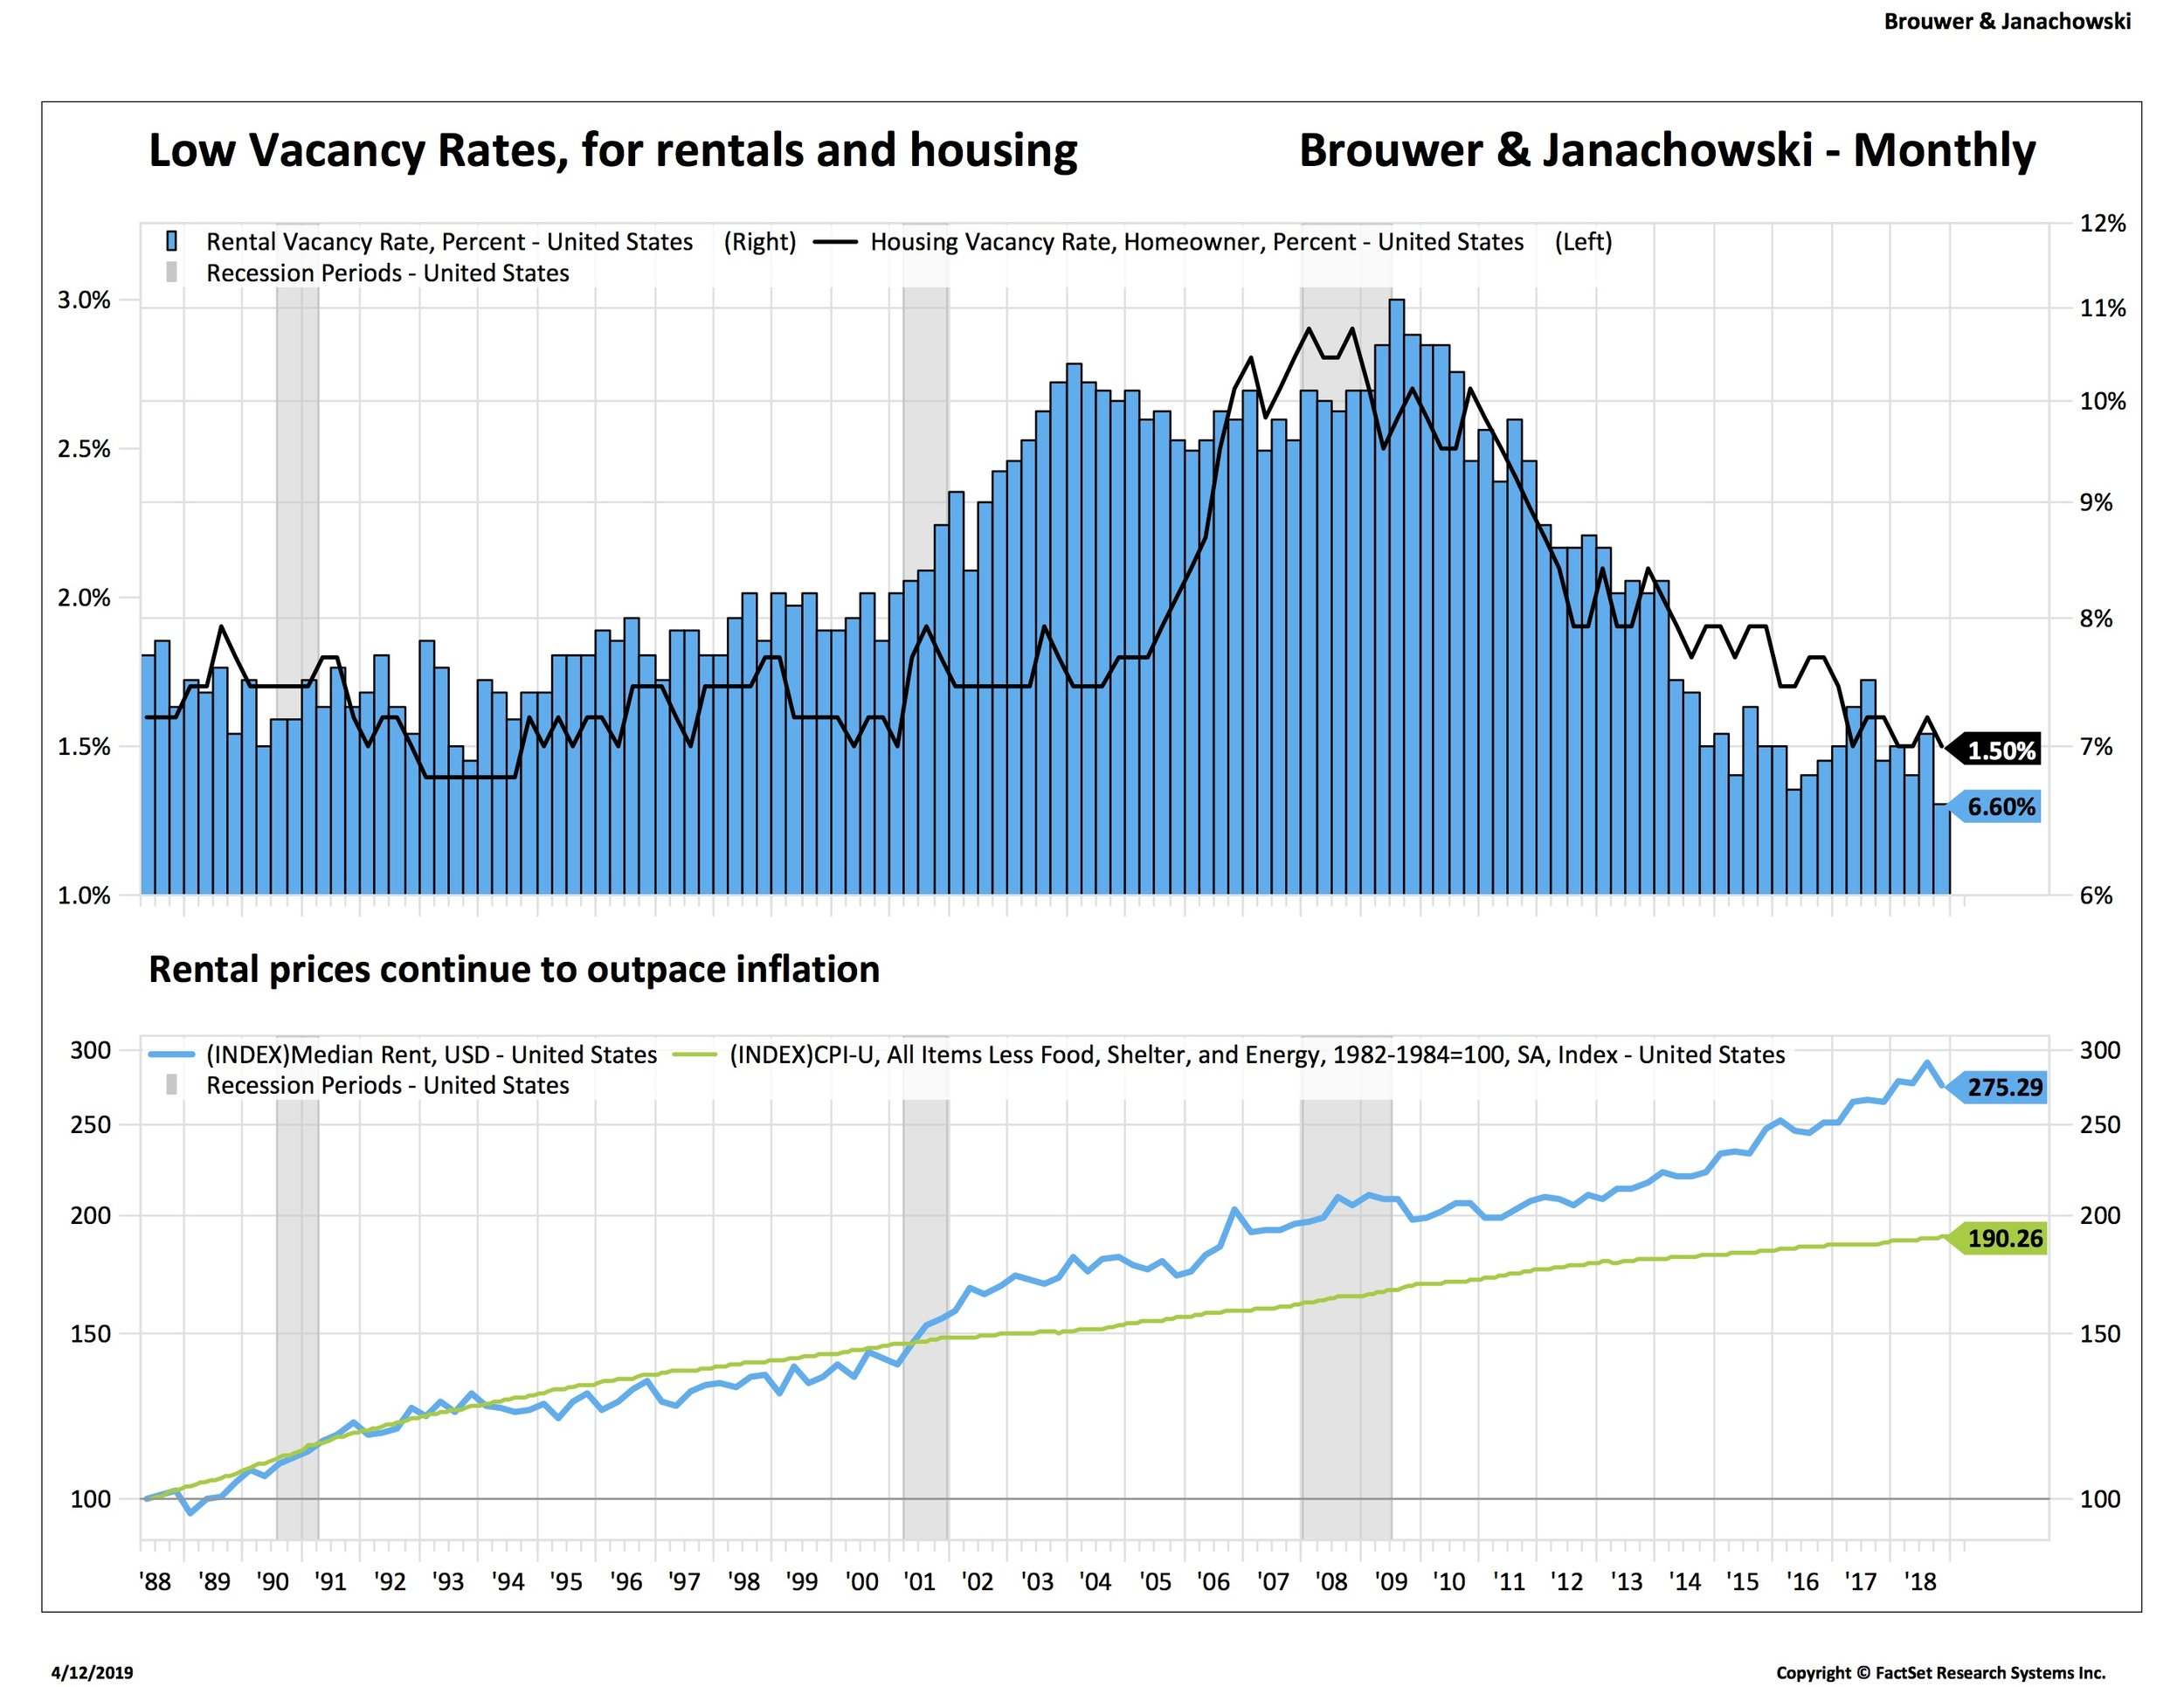 Rental vacancies at 30 year low